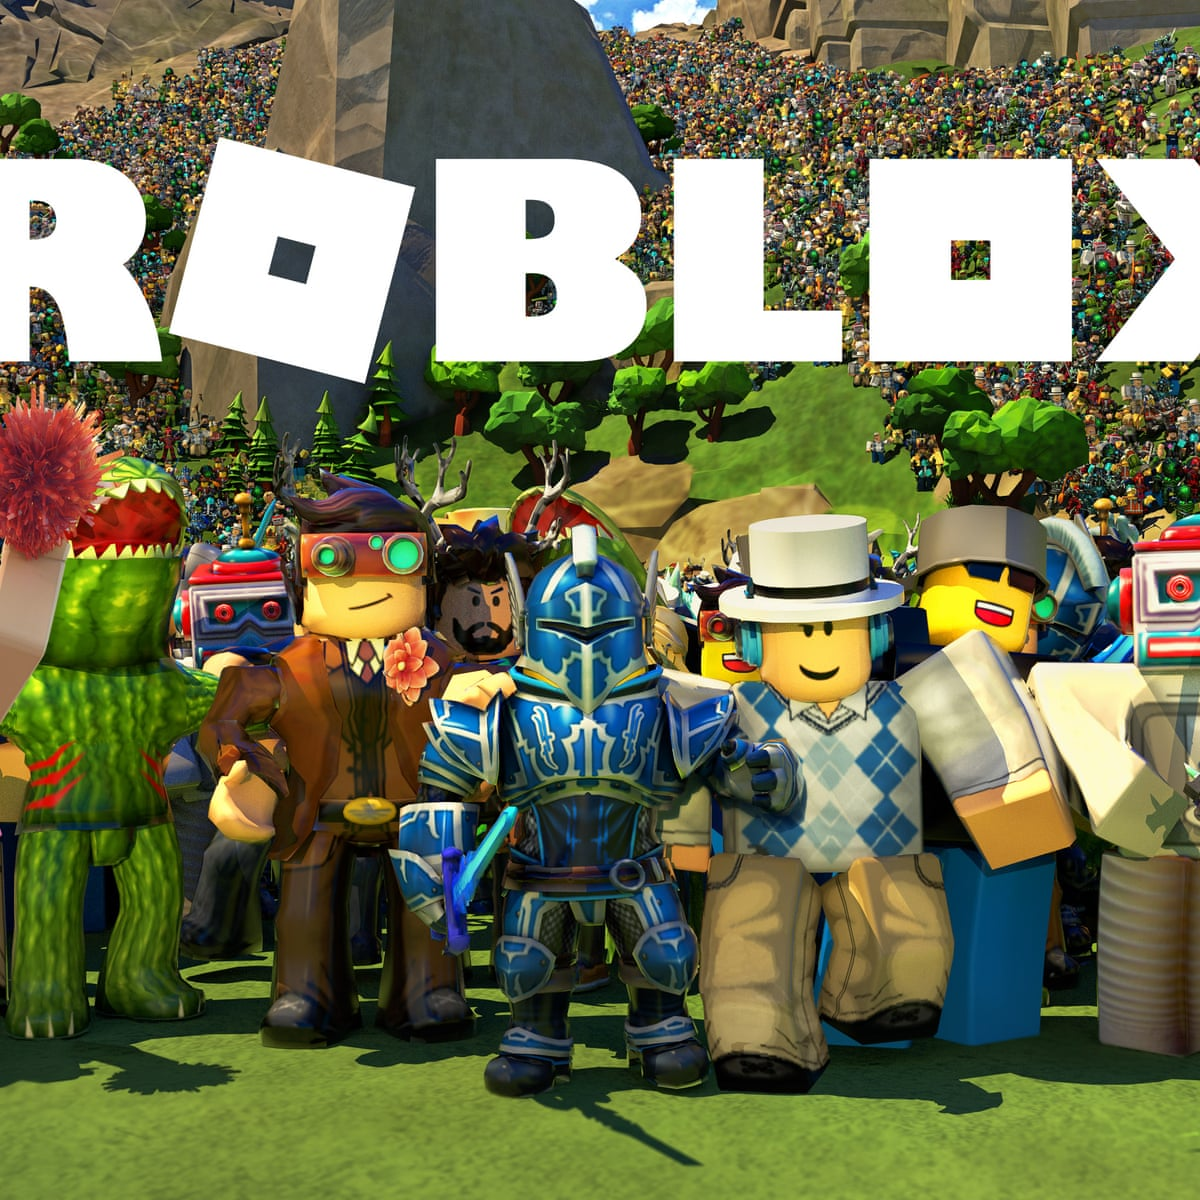 Green F Roblox A Quick Guide To Roblox For Adults Aka The Latest Next Minecraft Games The Guardian